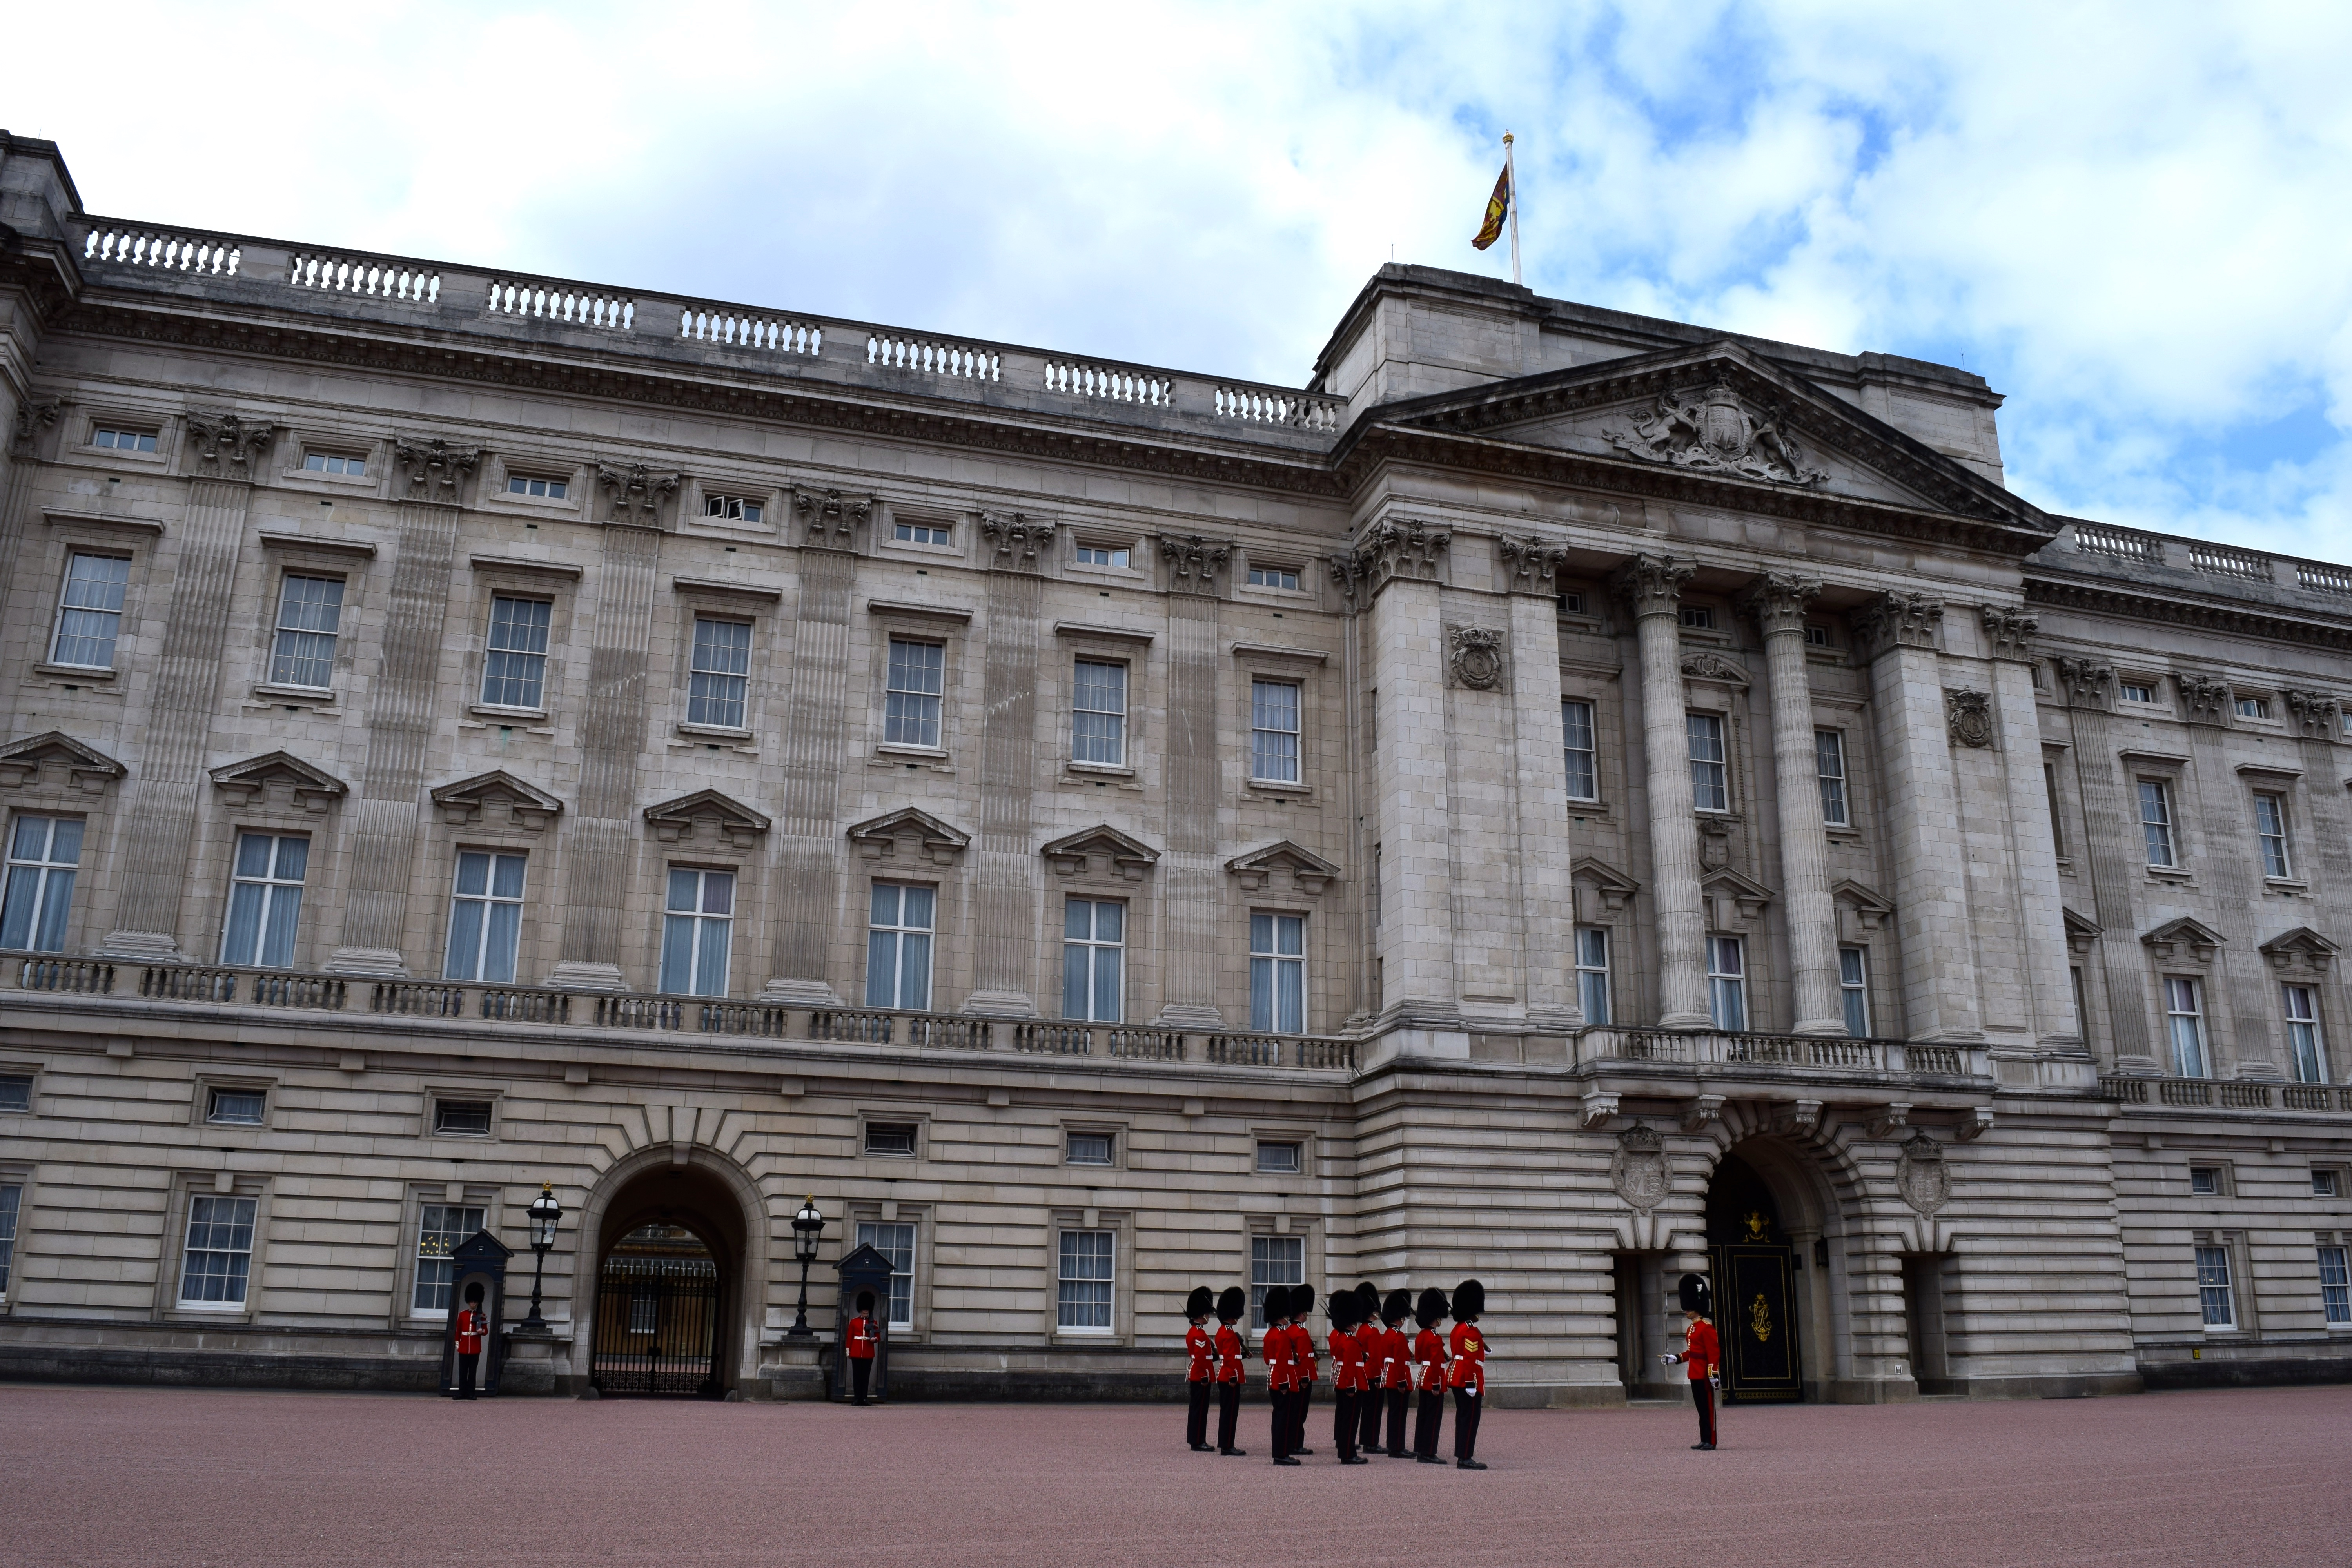 Changing of the Guards at Buckingham Palace - London, England.